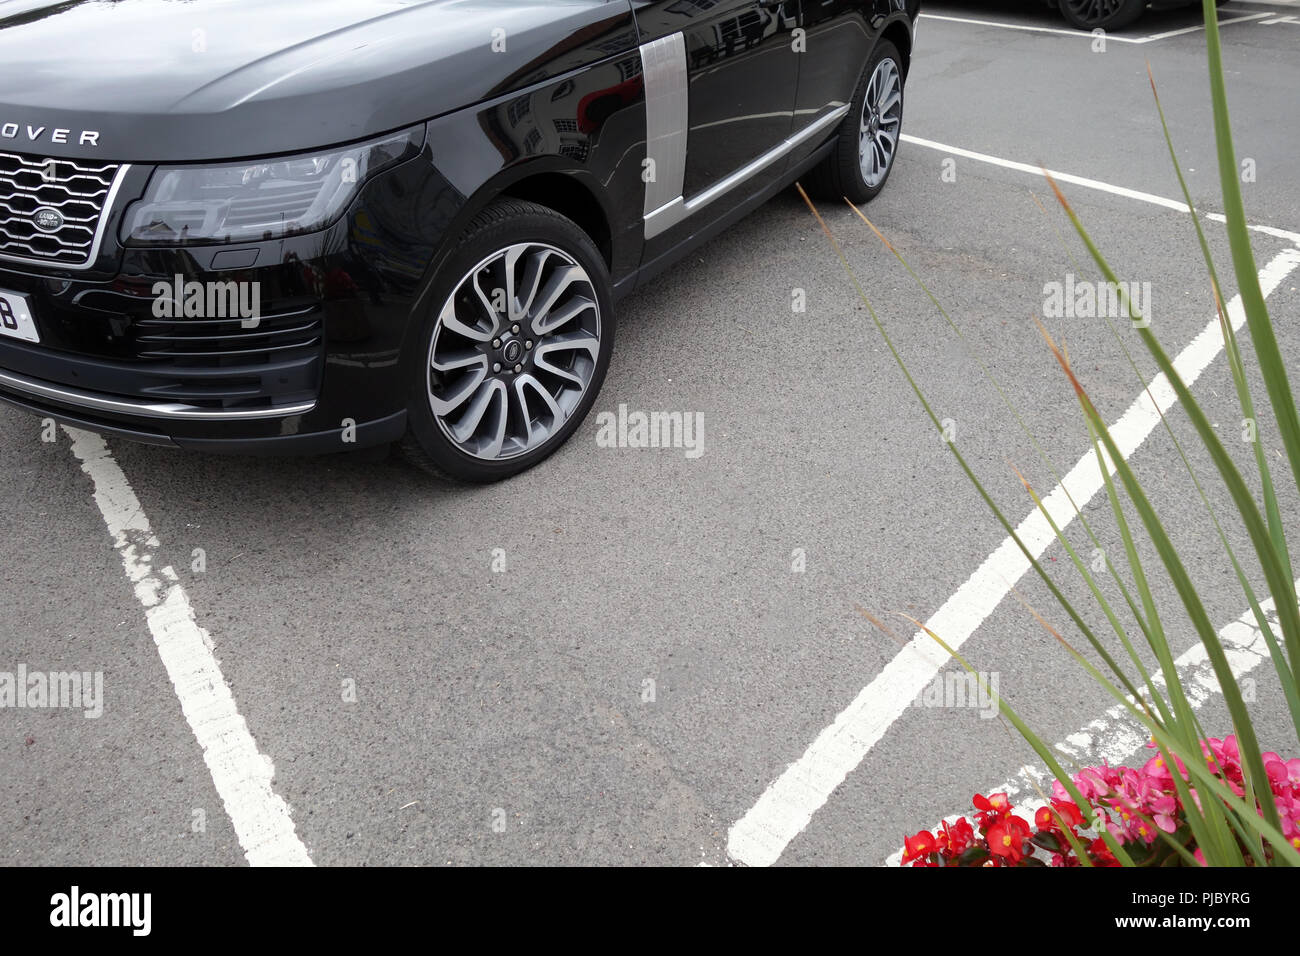 Badly Parked Range Rover in parking bay - Stock Image